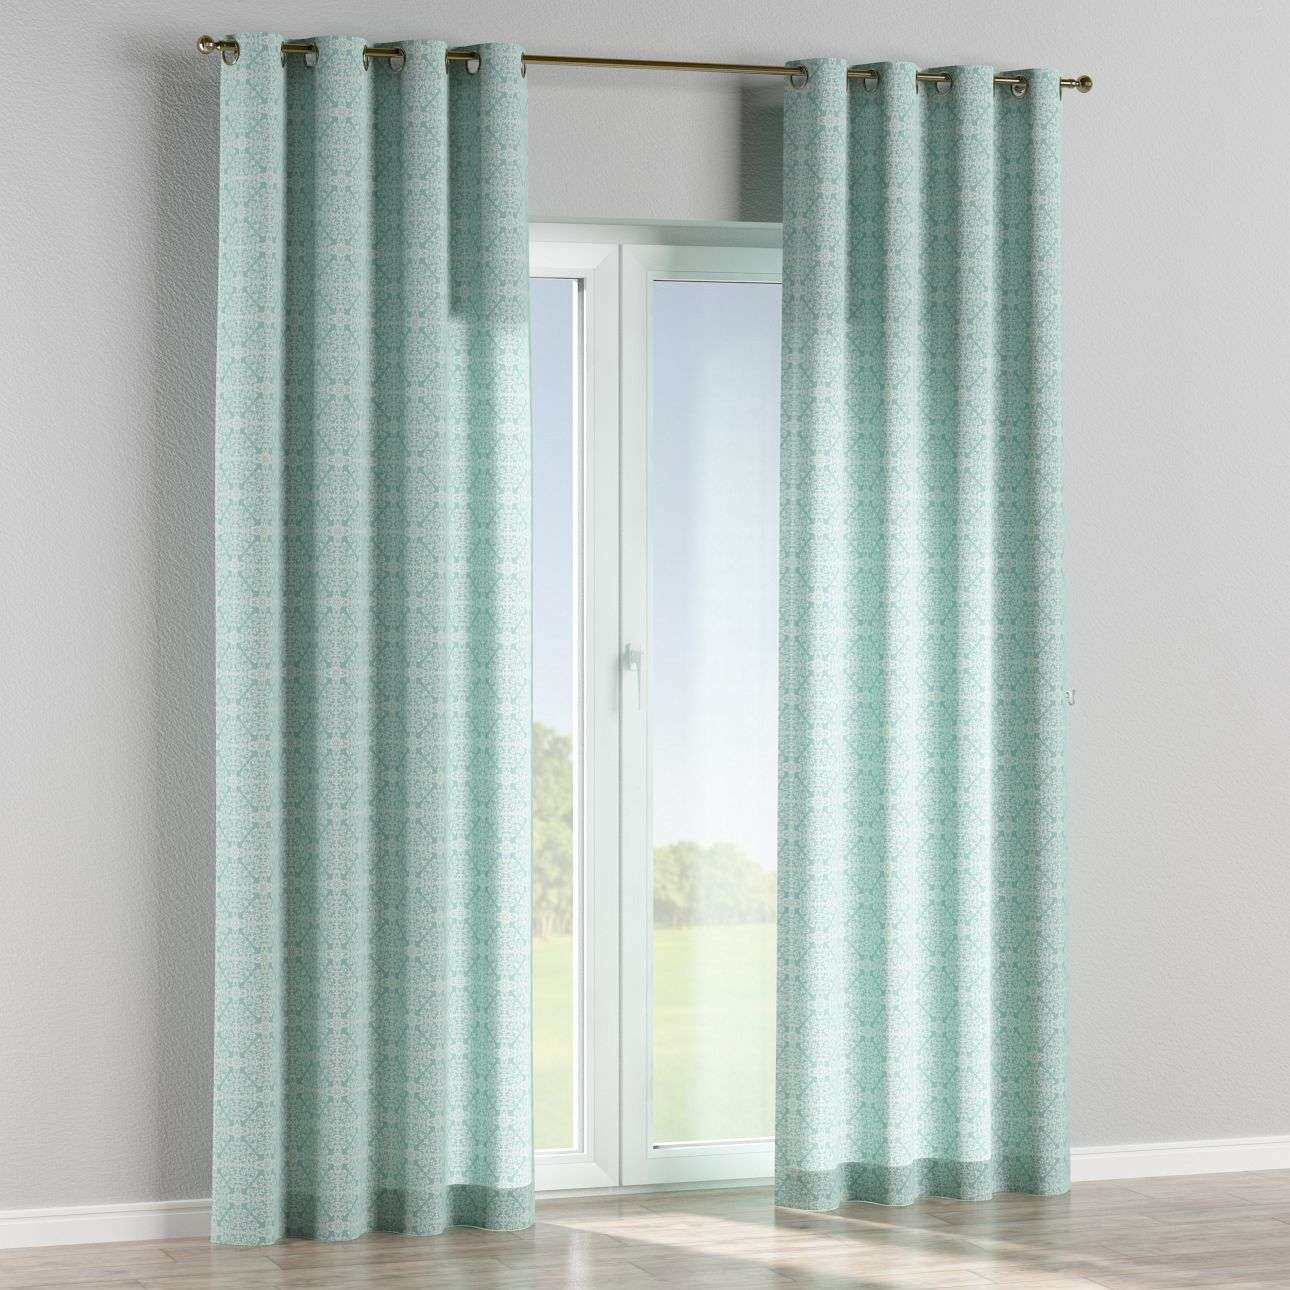 Eyelet curtains in collection Flowers, fabric: 140-37